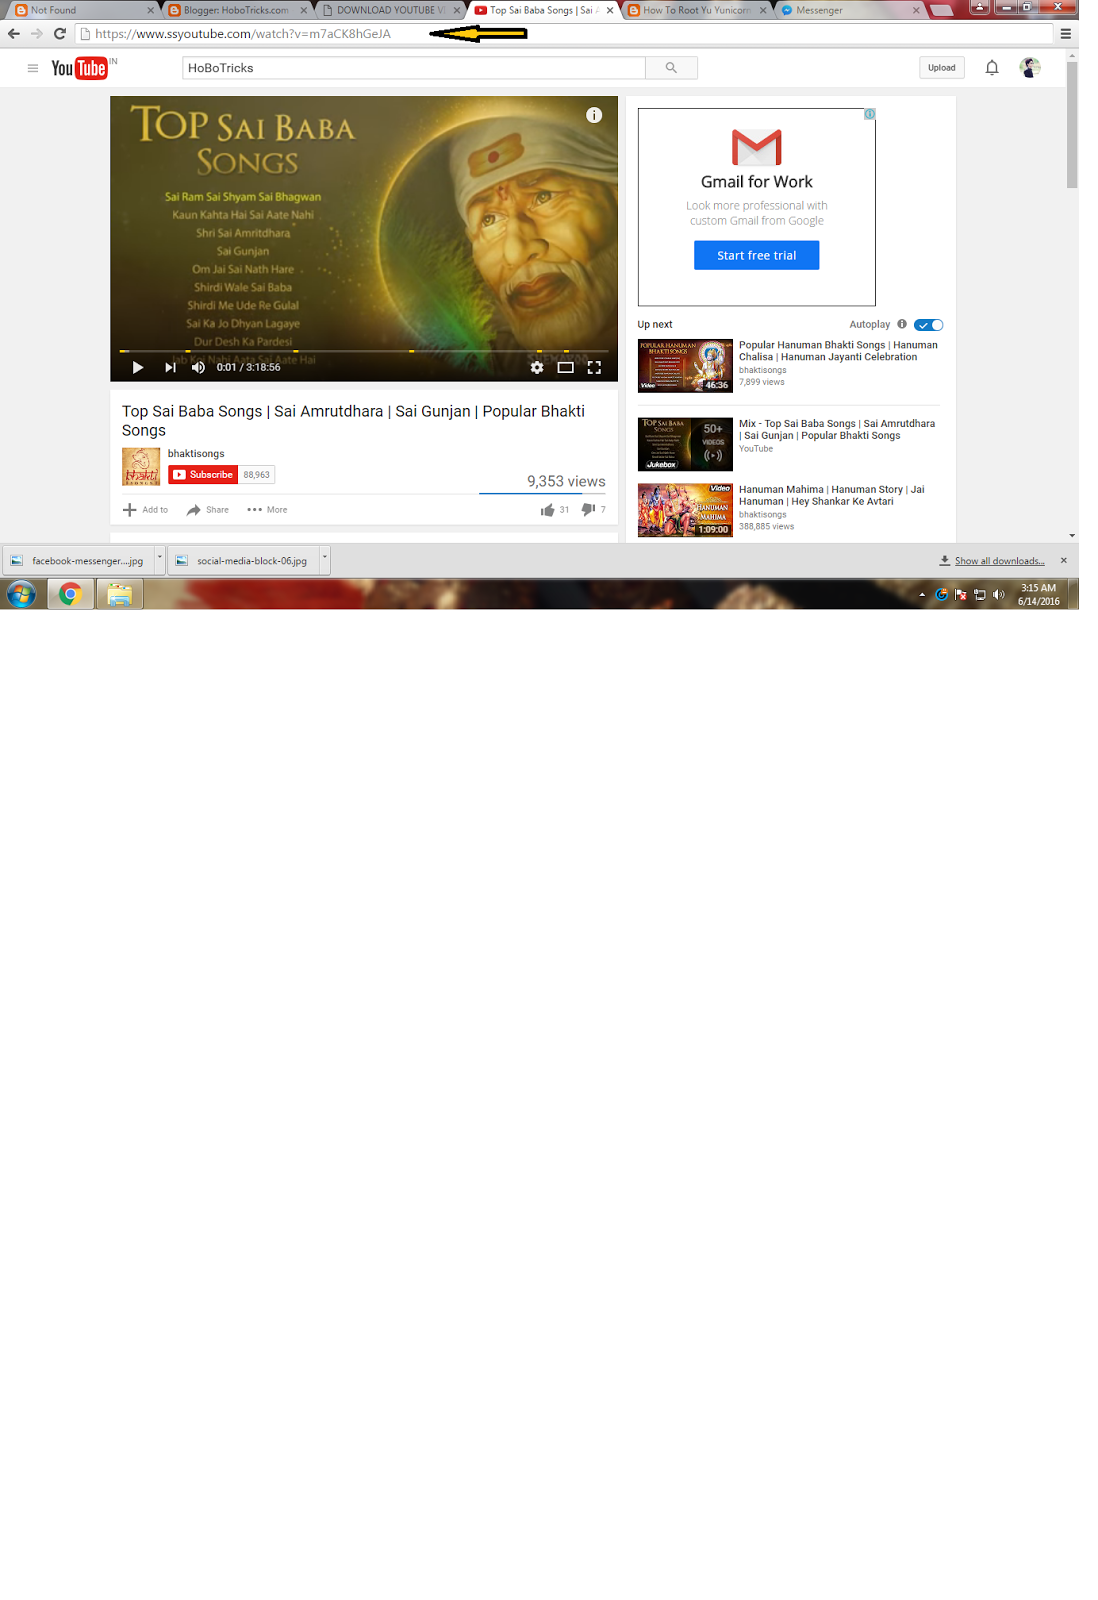 To Download Youtube Video Just Add Ss After  As Shown Below